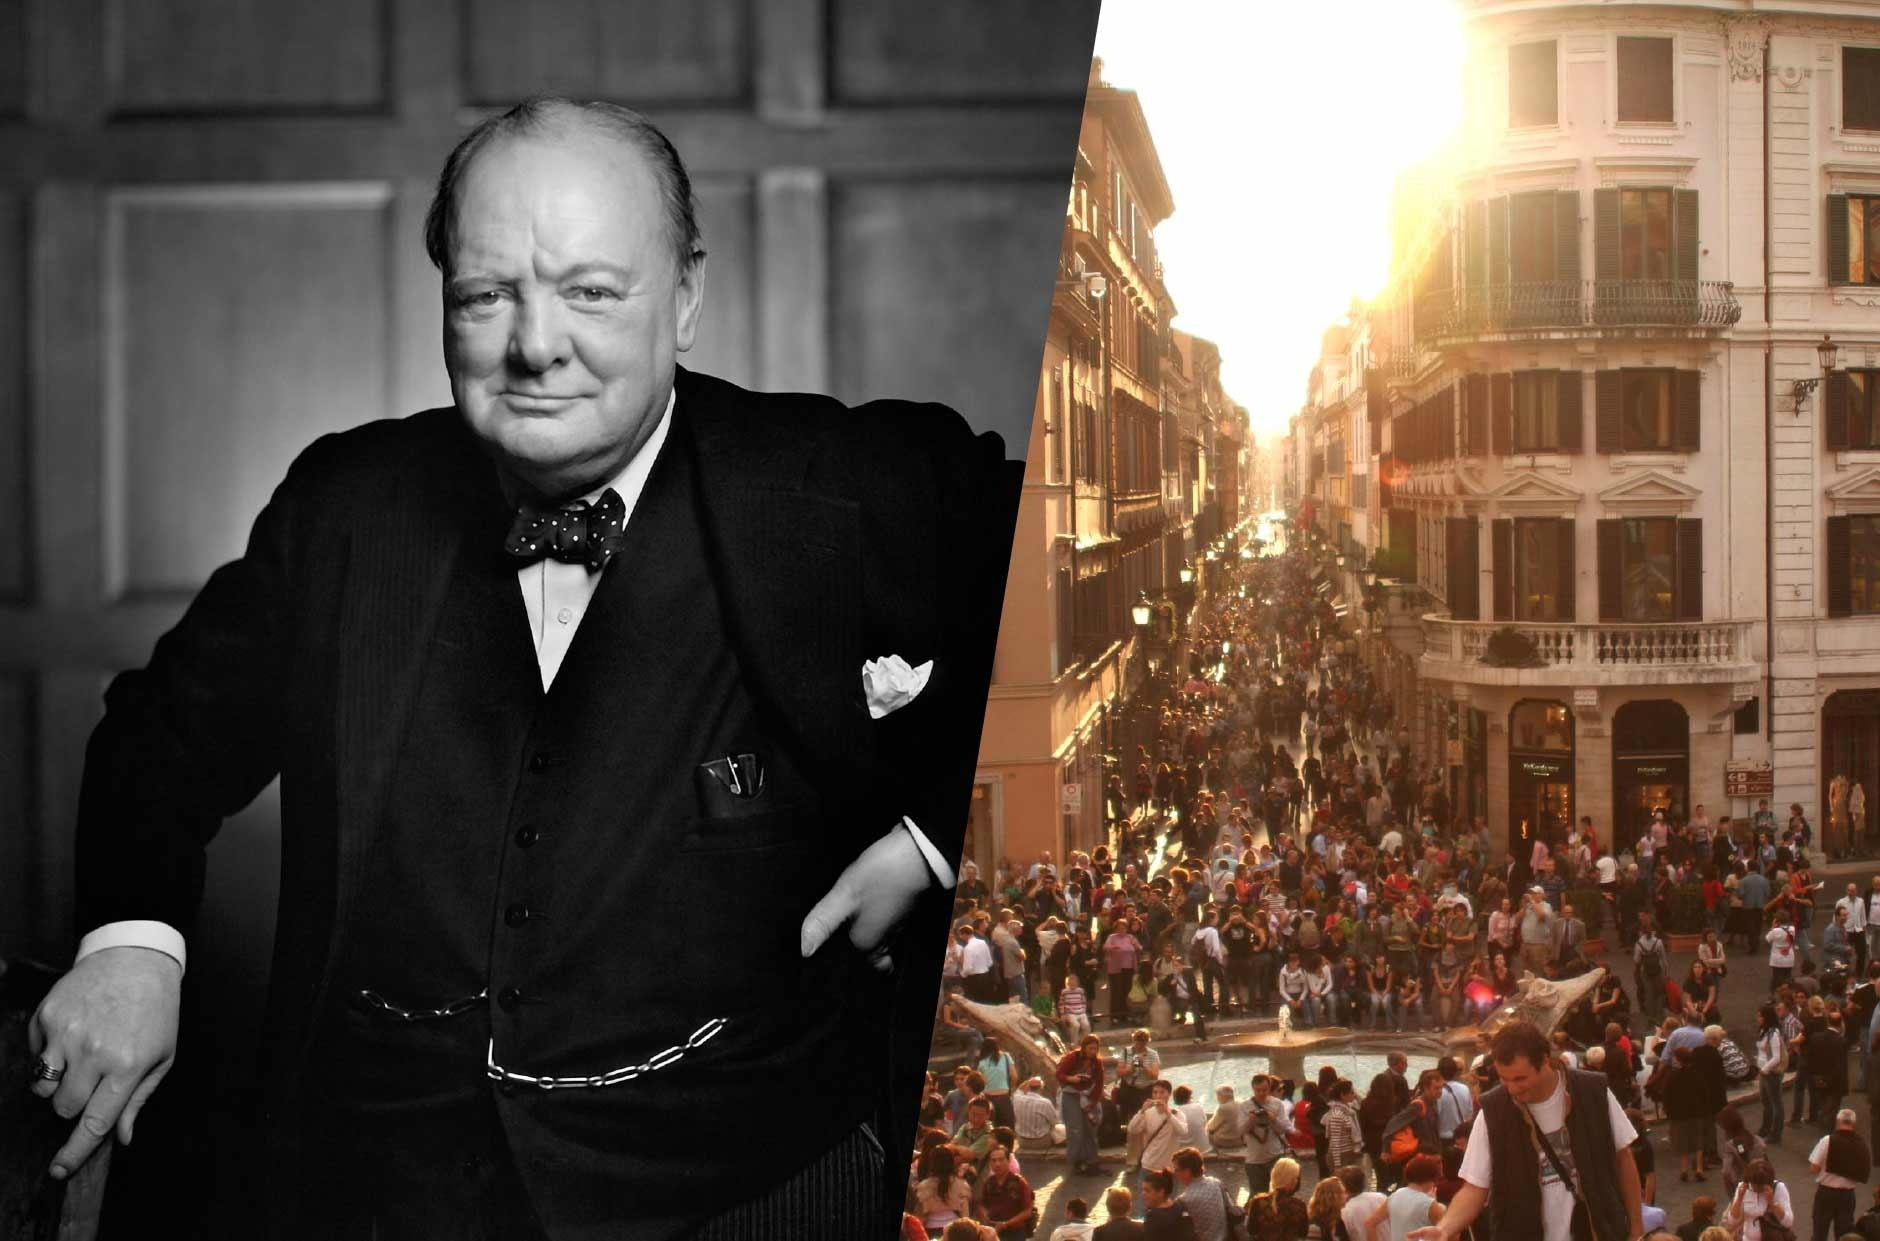 churchill websafe